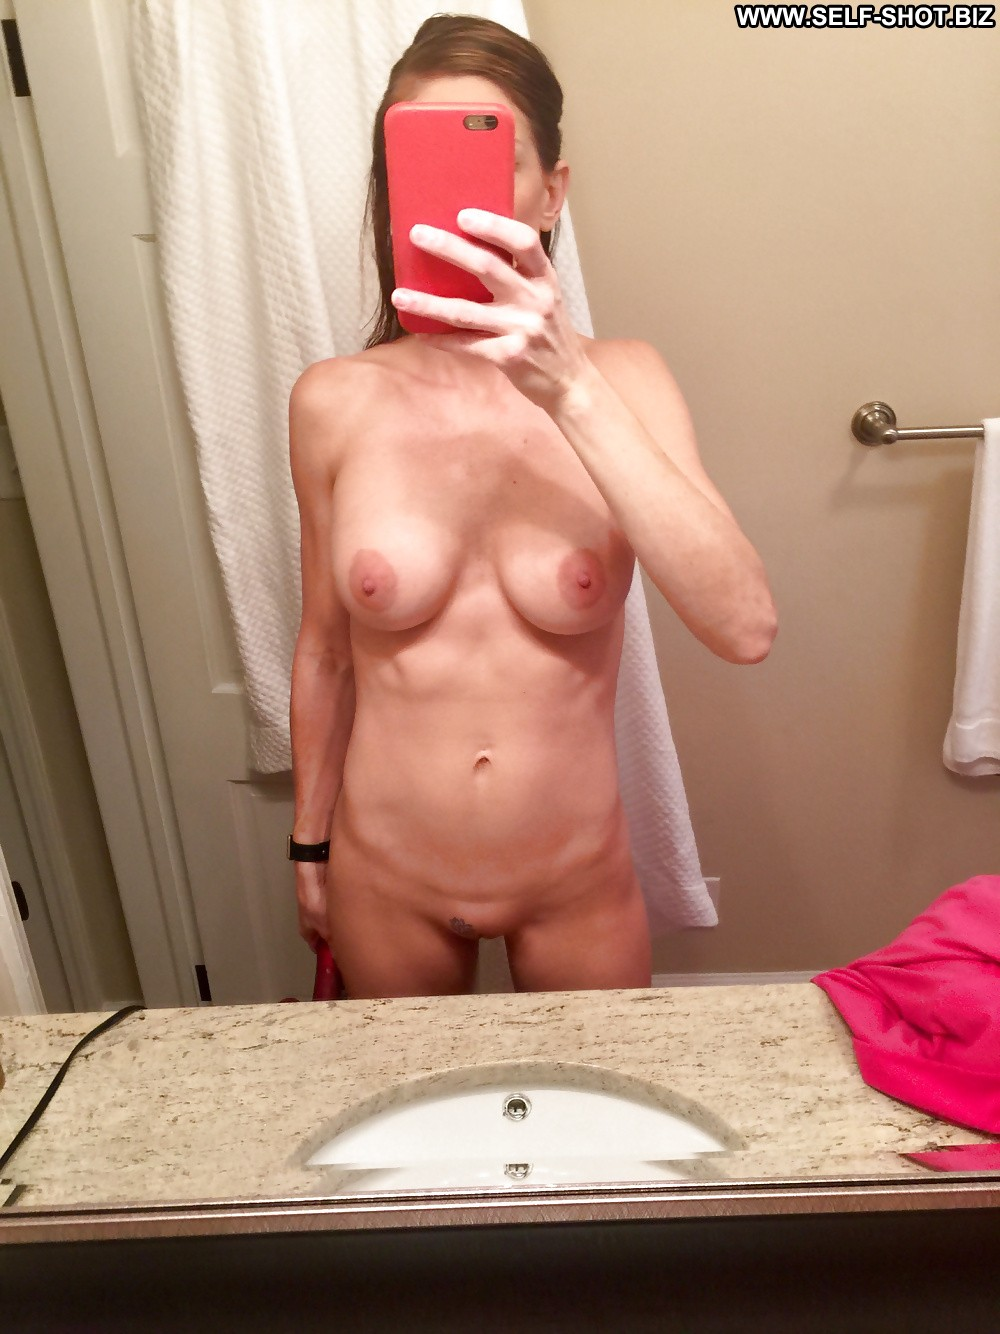 Real amateur couple private photo share